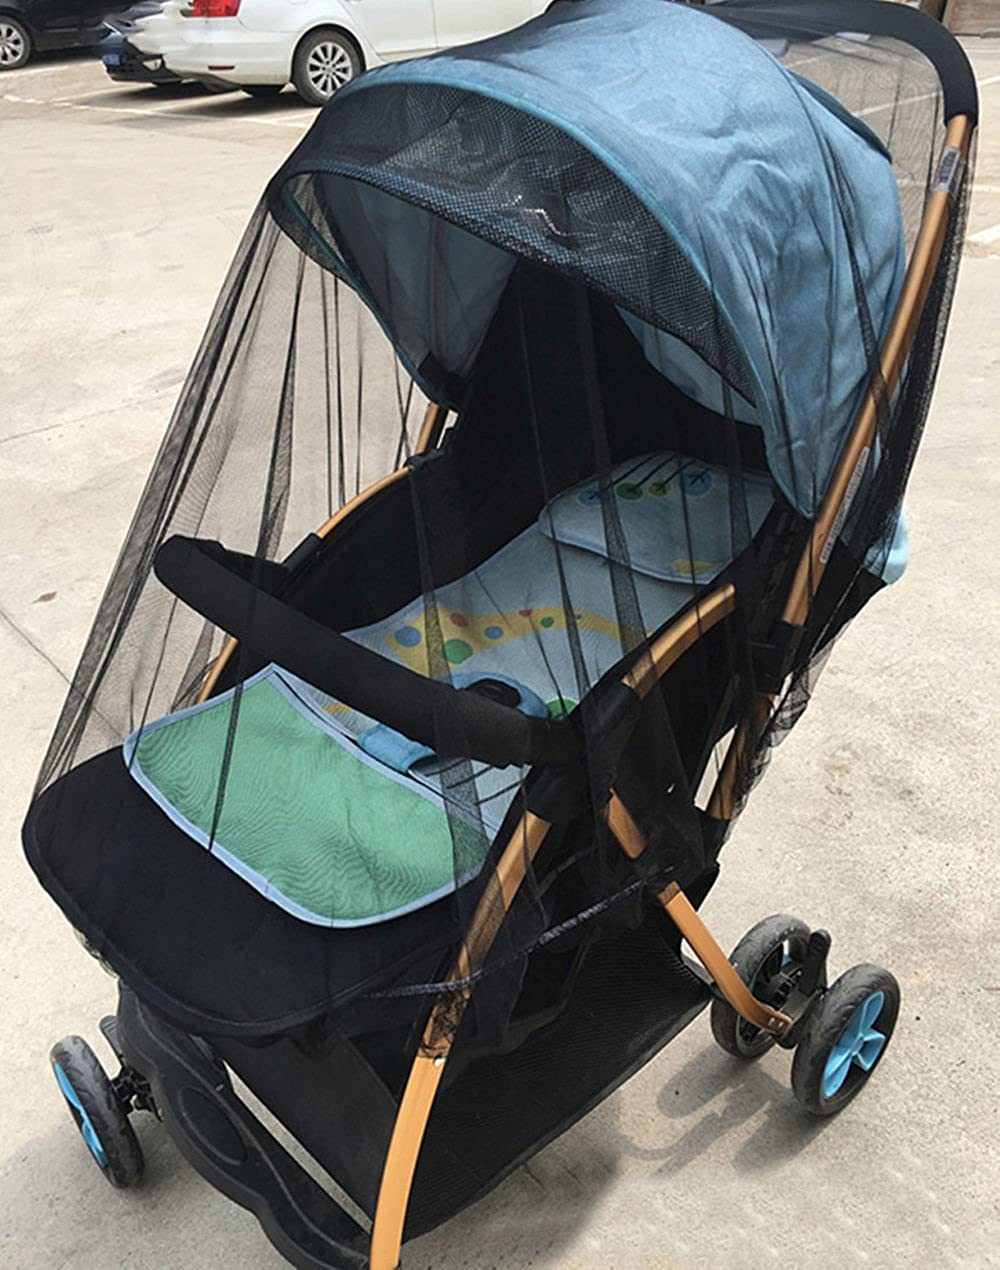 Birdfly Infant Baby Stroller Double Mosquito Net Bug Netting Cover